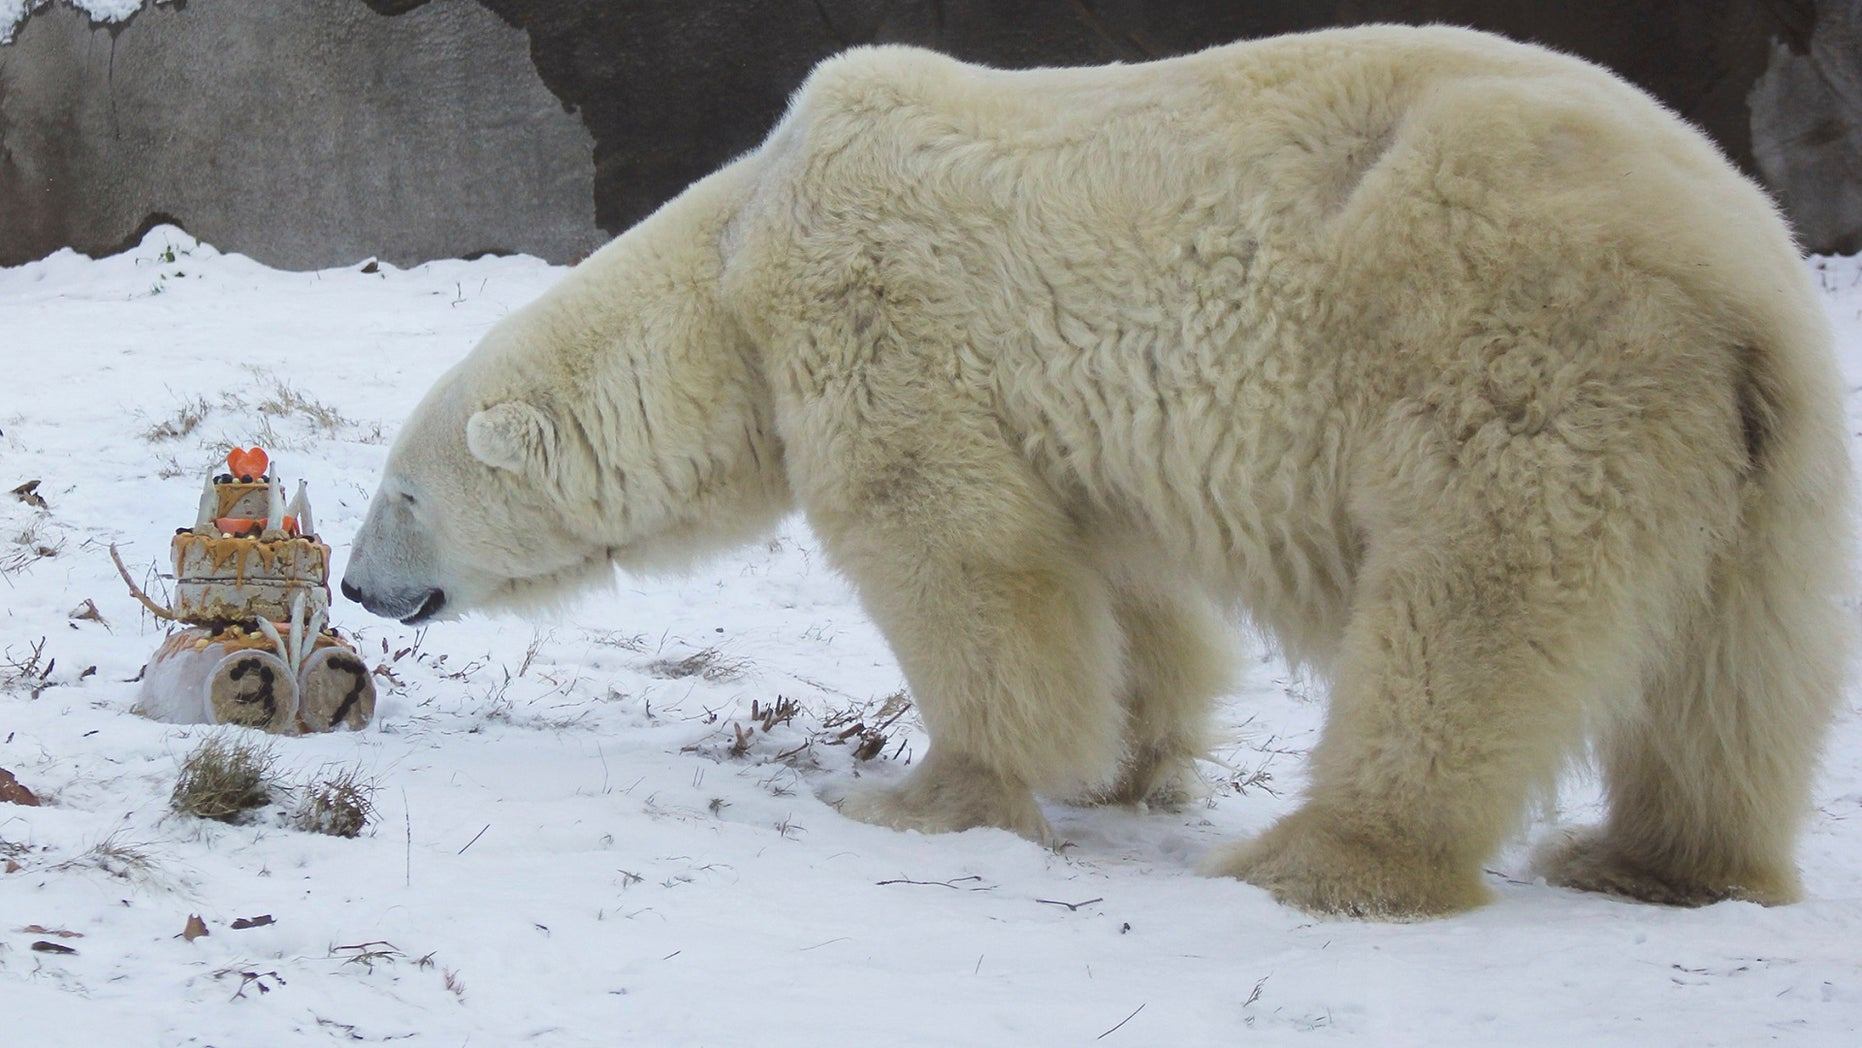 Coldilocks celebrated her 37th birthday on Thursday with cake and presents at the Philadelphia Zoo.